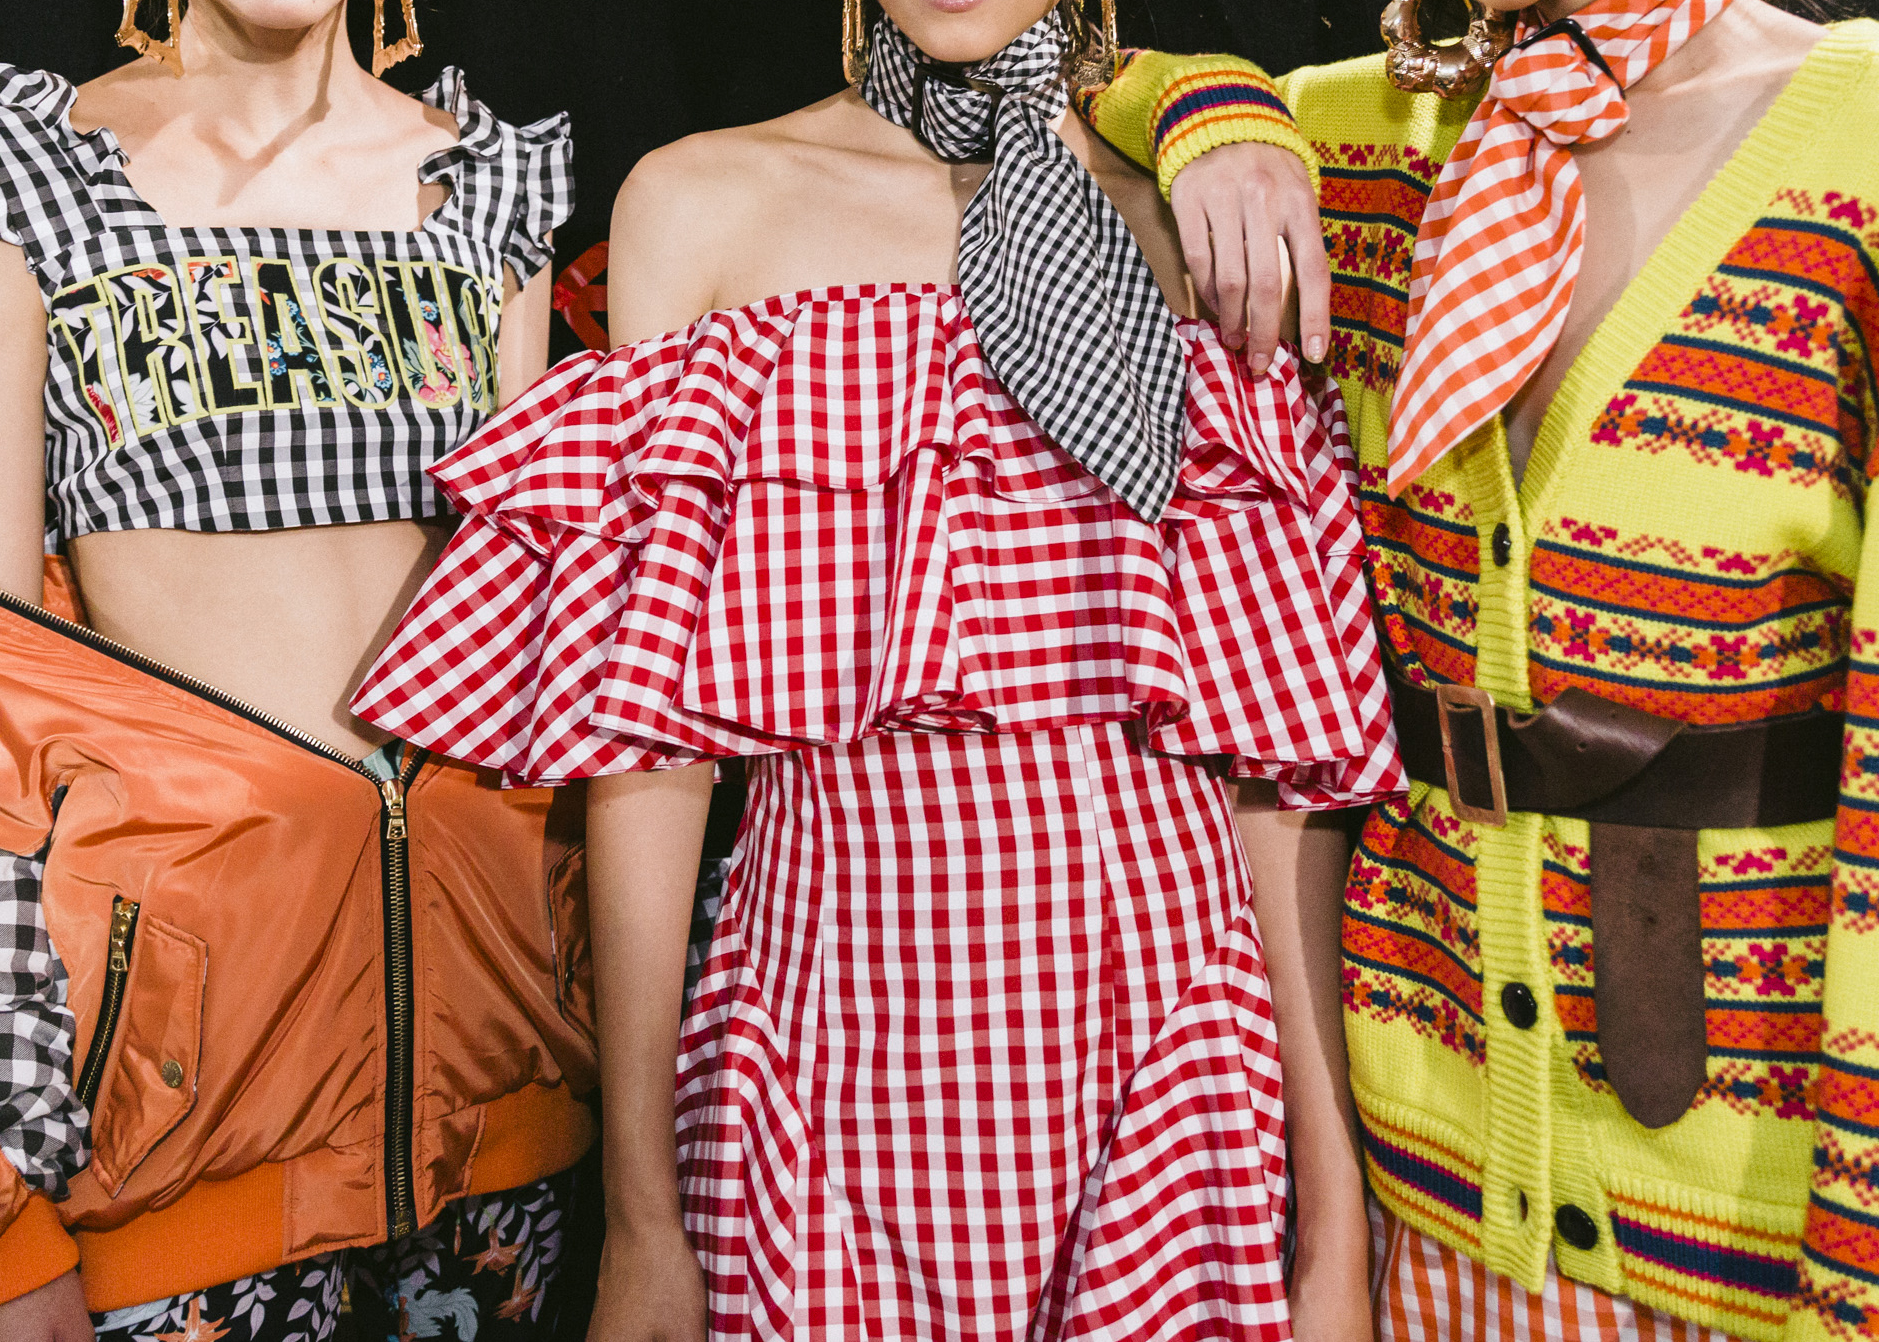 ss-2017_london-fashion-week_GB_0020_henry-holland_68219.jpg